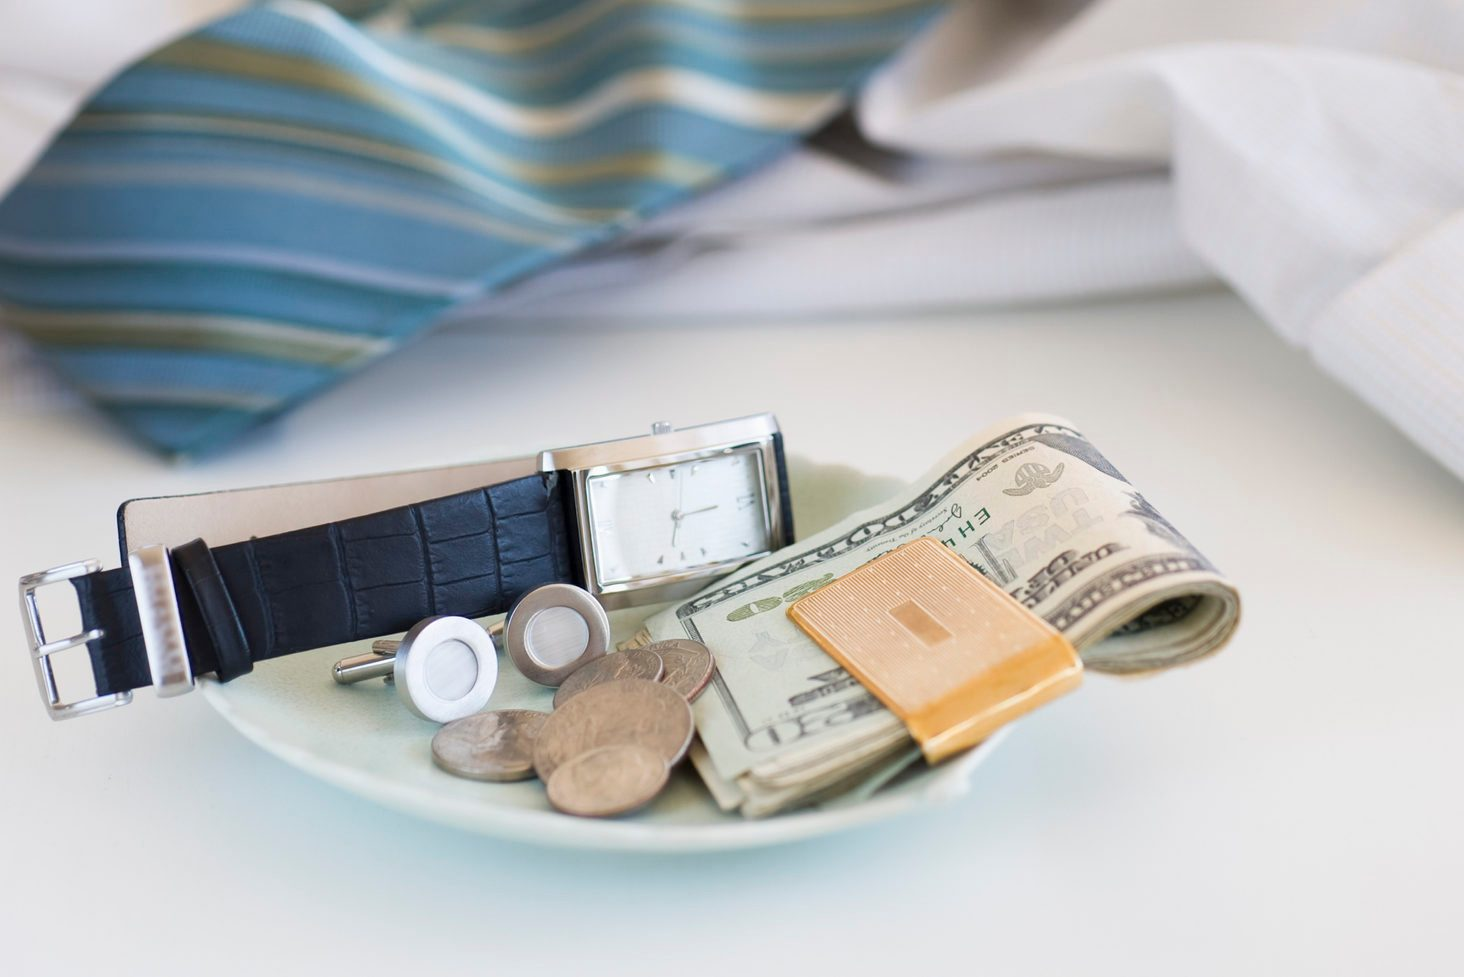 Men's items on a plate on dresser